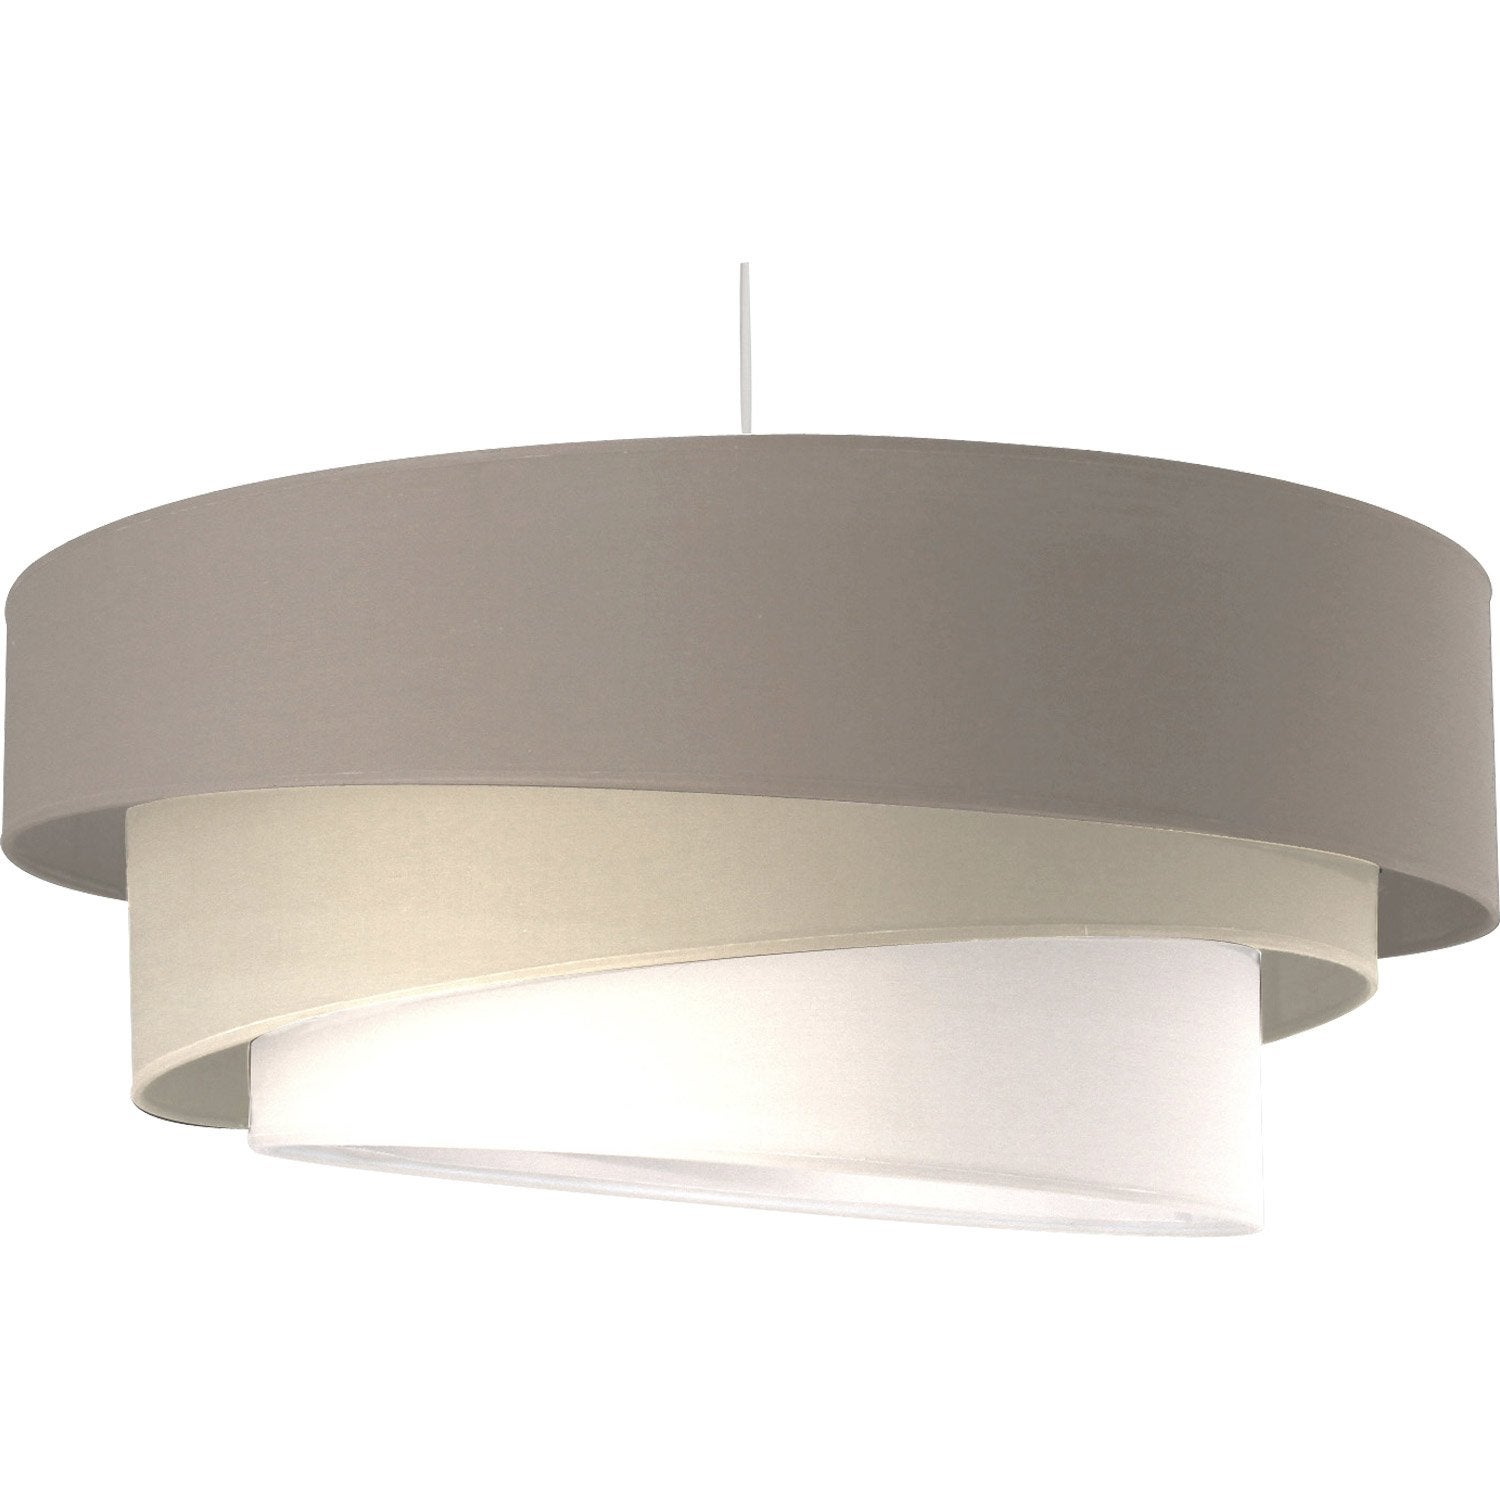 Suspension moderne ionos coton brun taupe n 3 1 x 60 w for Mensole moderne leroy merlin